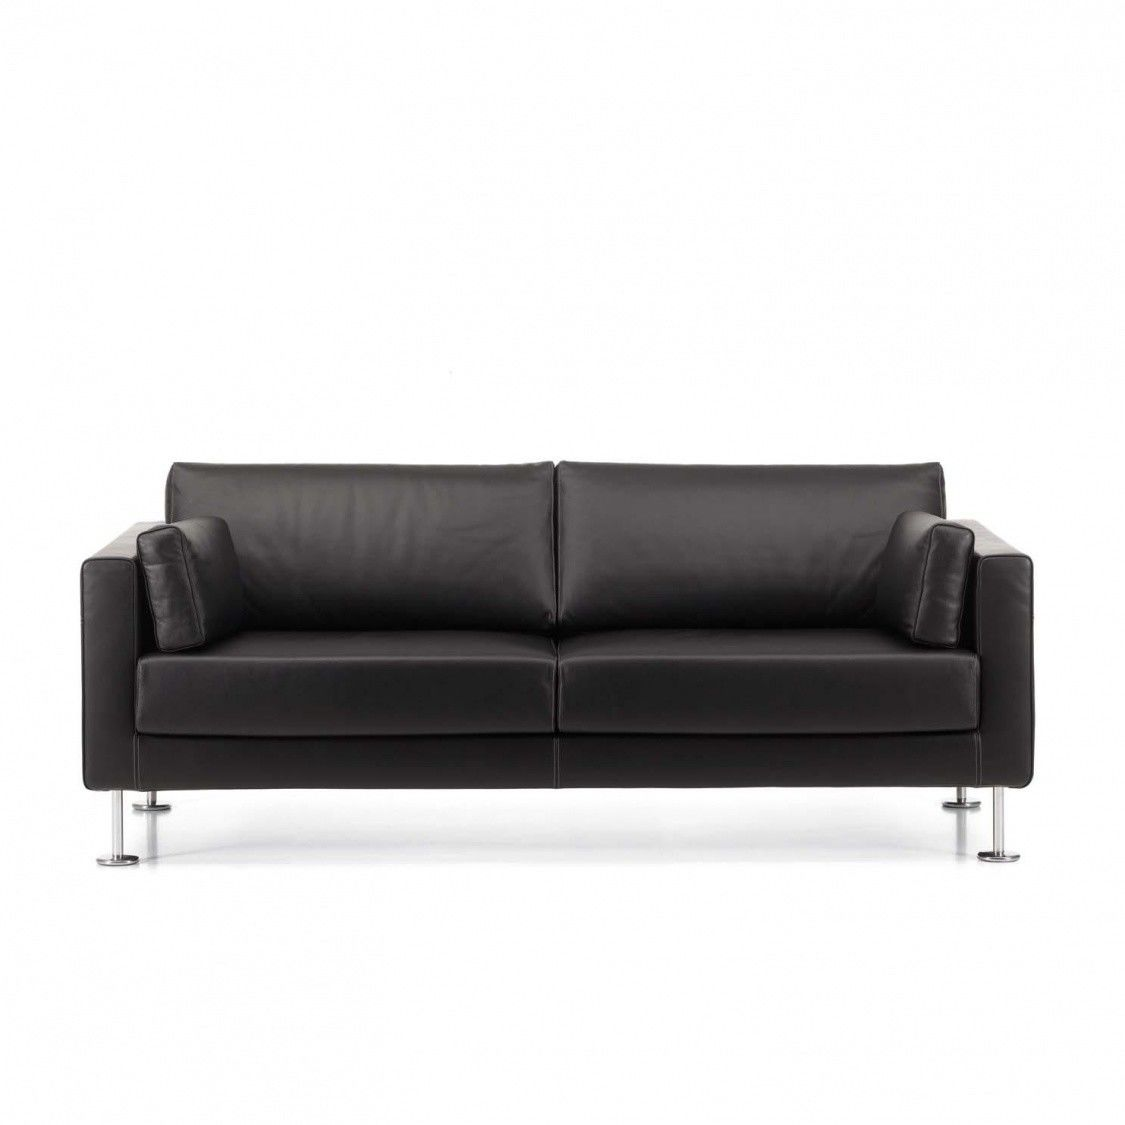 park jasper morrison 2 seater leather sofa vitra. Black Bedroom Furniture Sets. Home Design Ideas